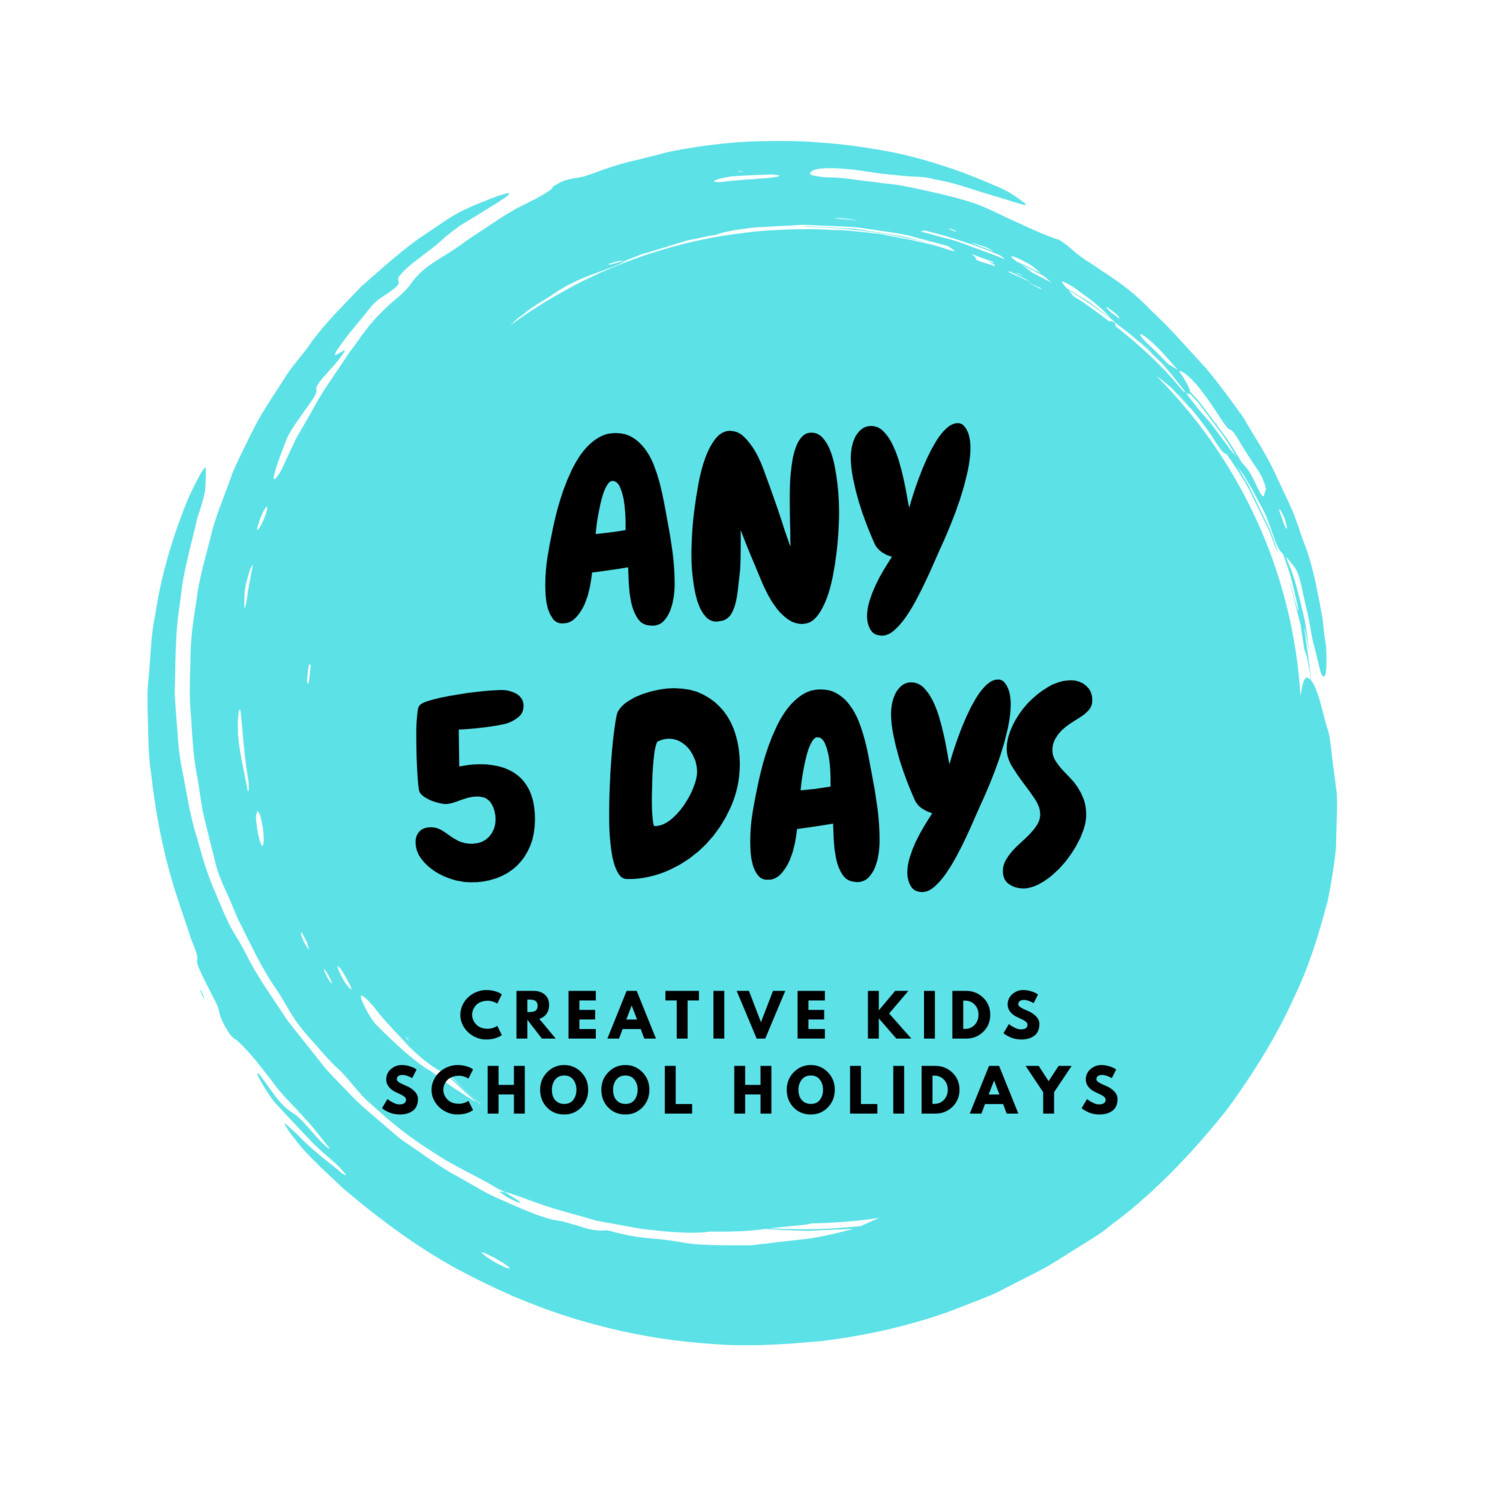 Summer School Holidays Creative Kids - 5 Days